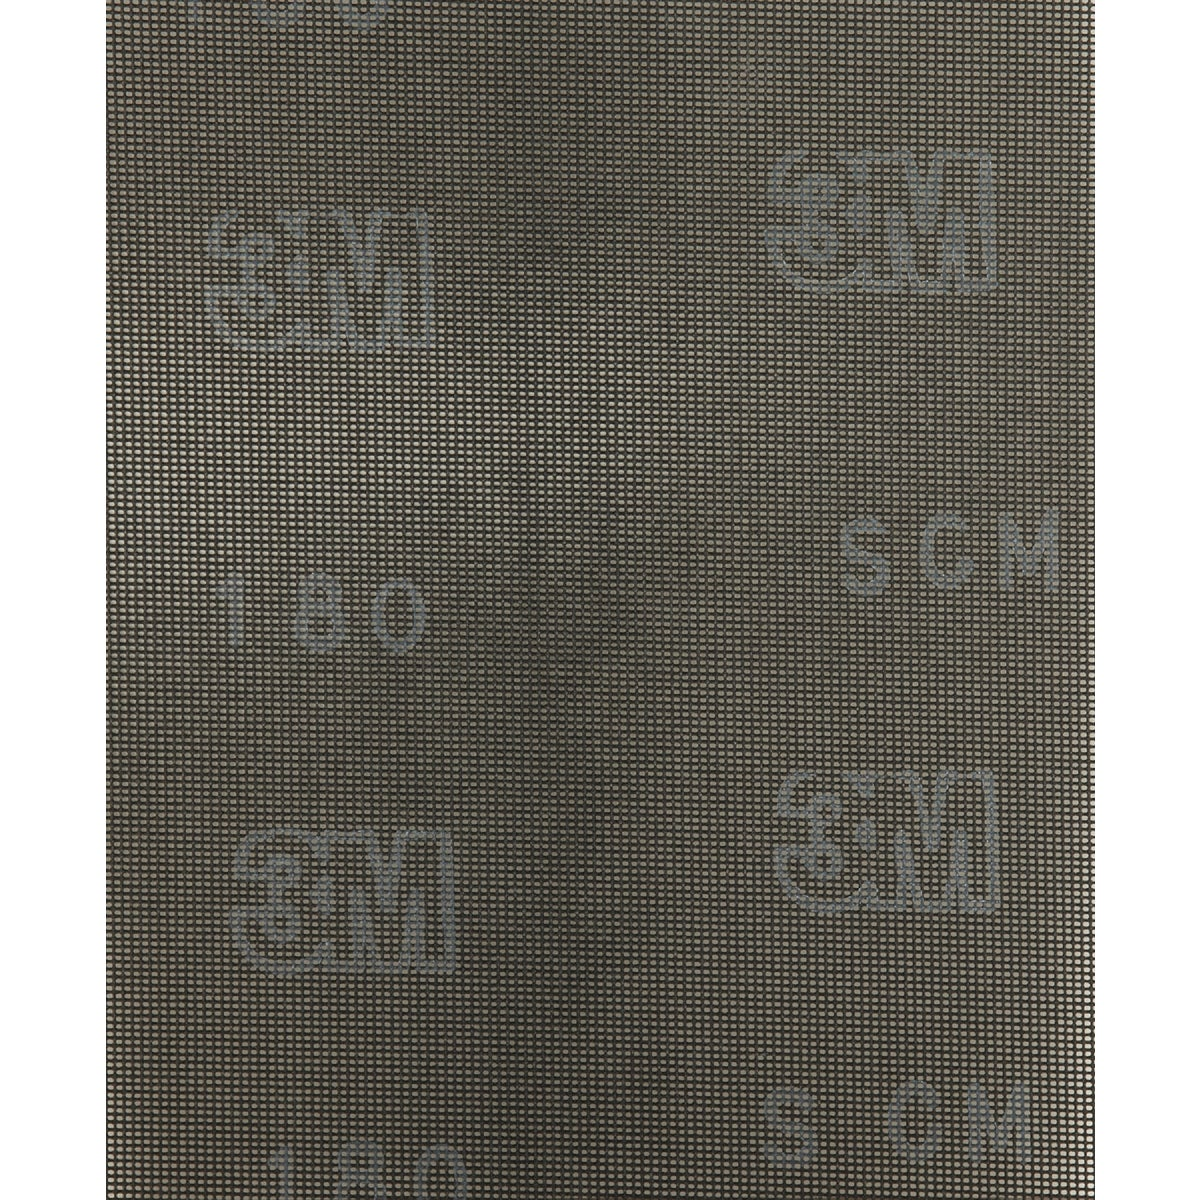 180G SCREENBACK SHEET - 10456 by 3m Co